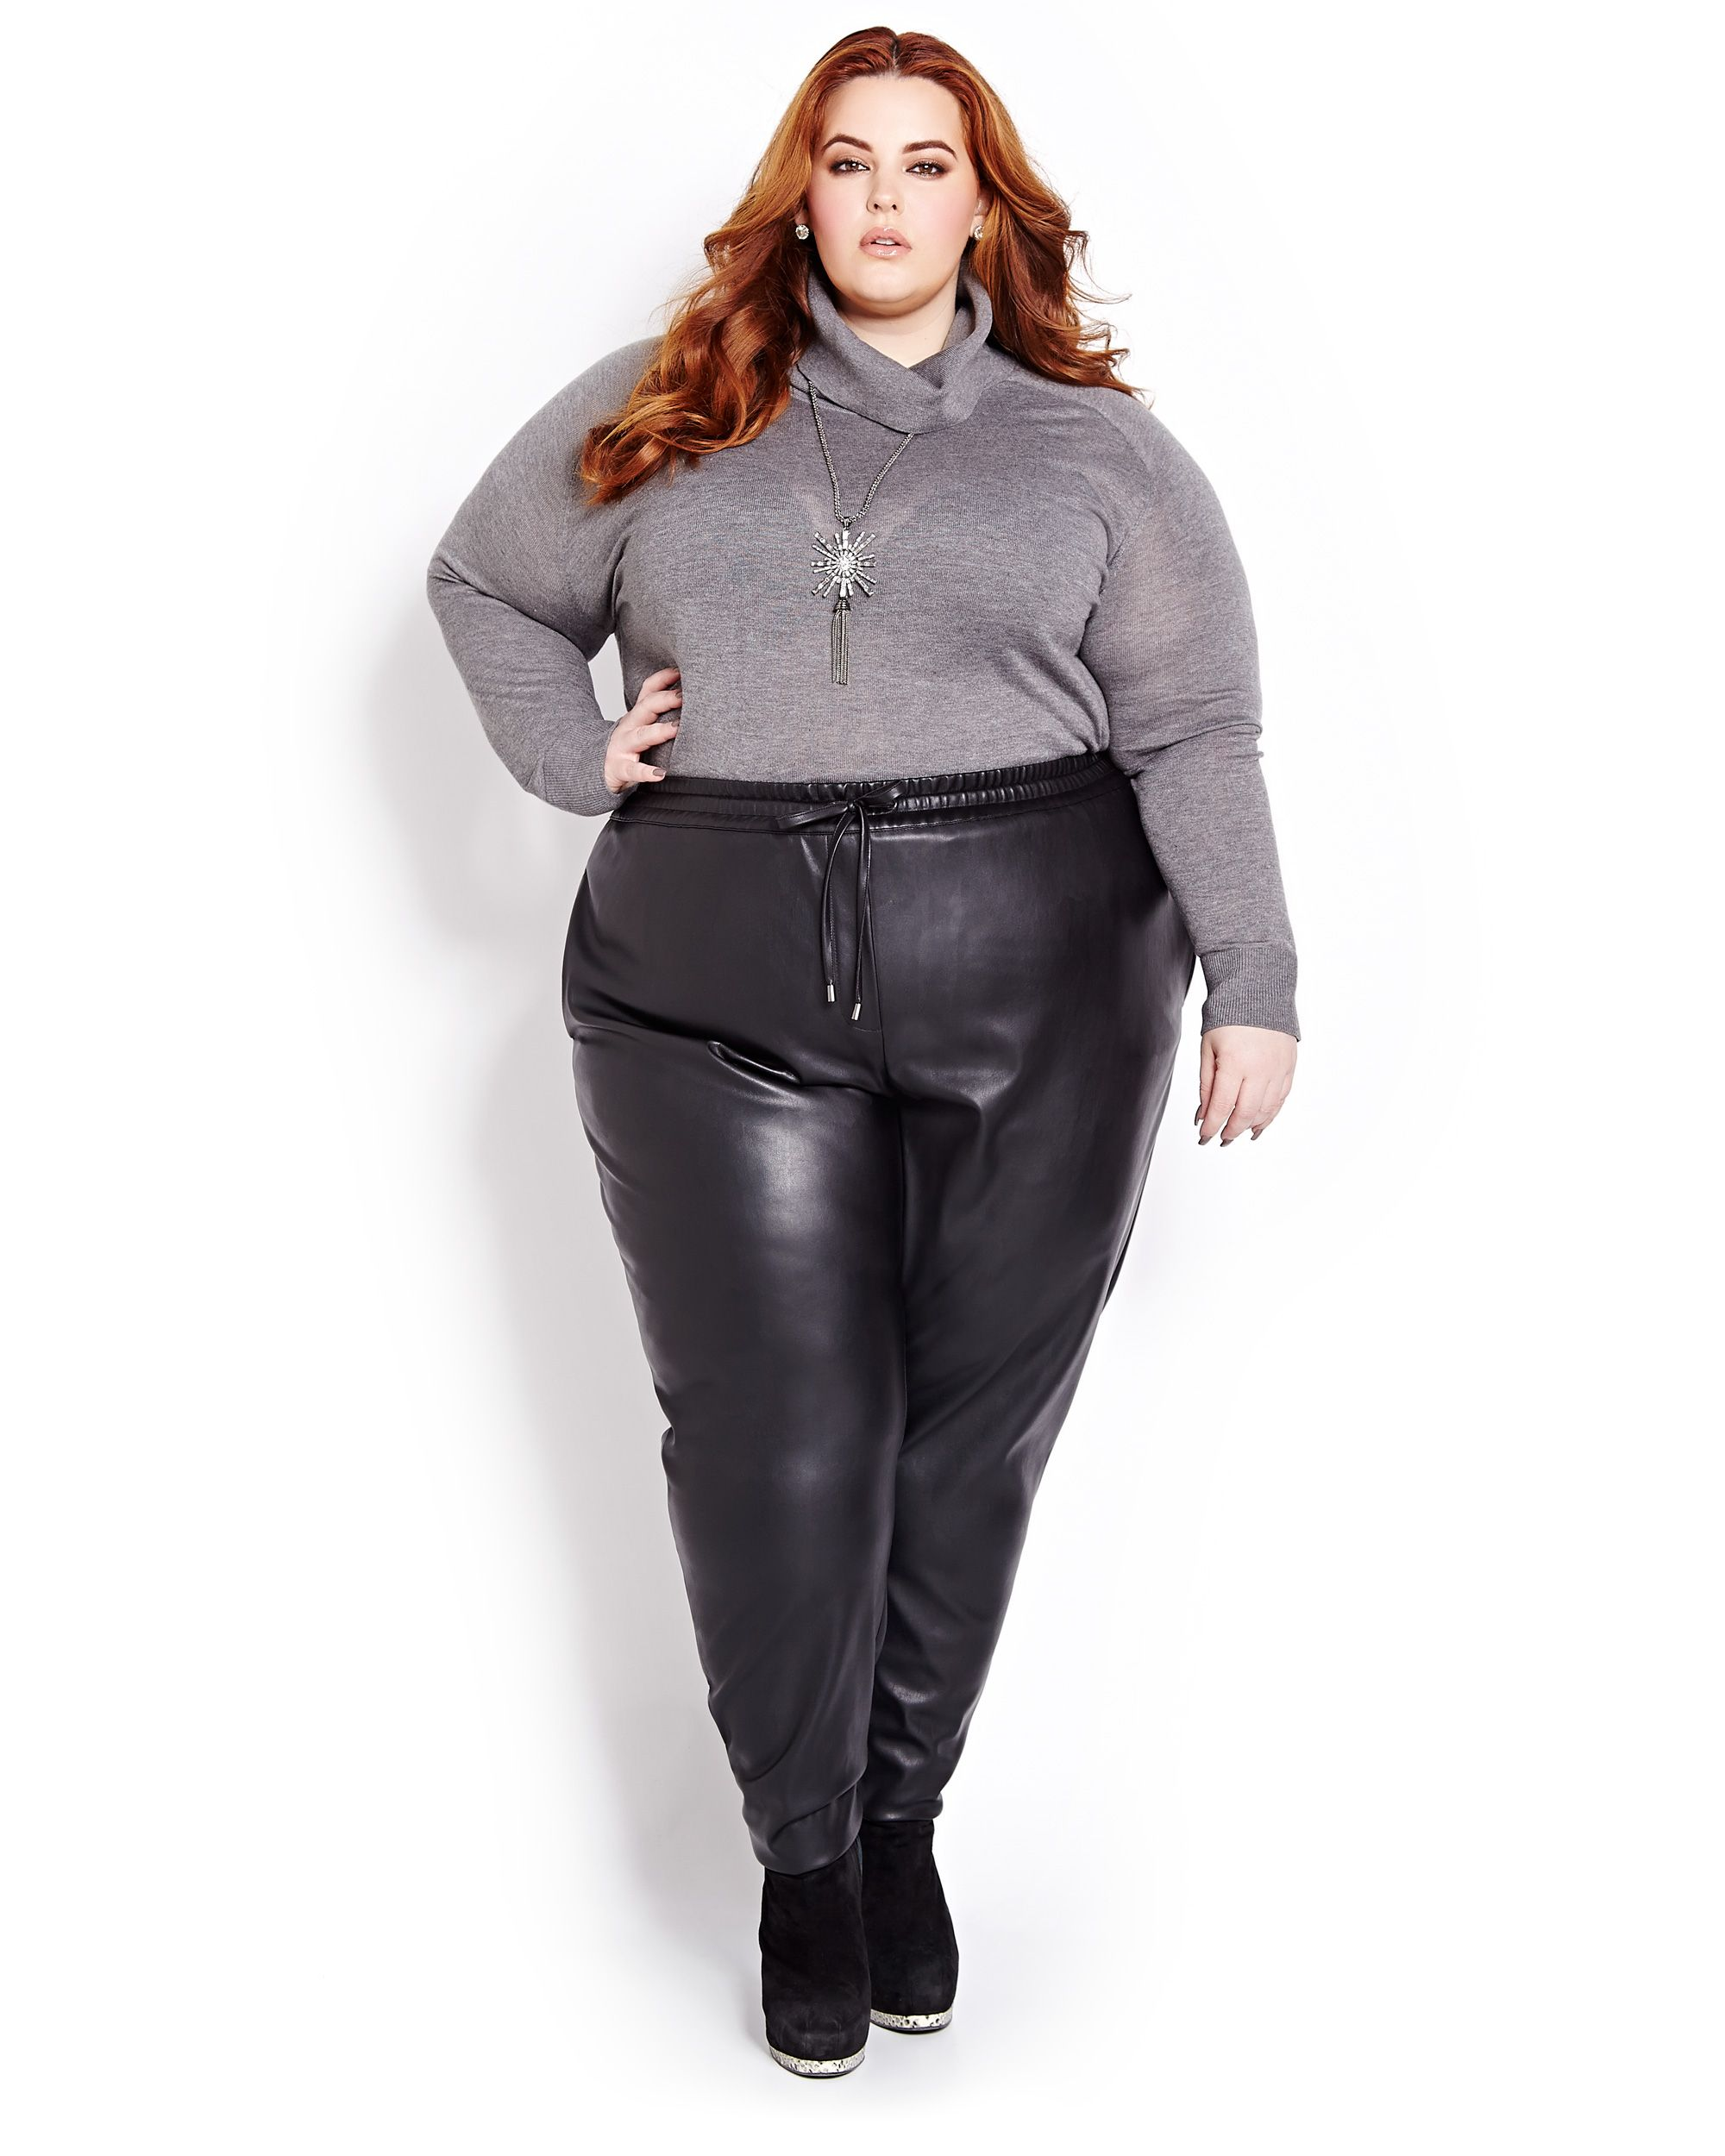 a3430afb7d5 Our Decadent Folk collection as modeled by plus-size model and body  activist